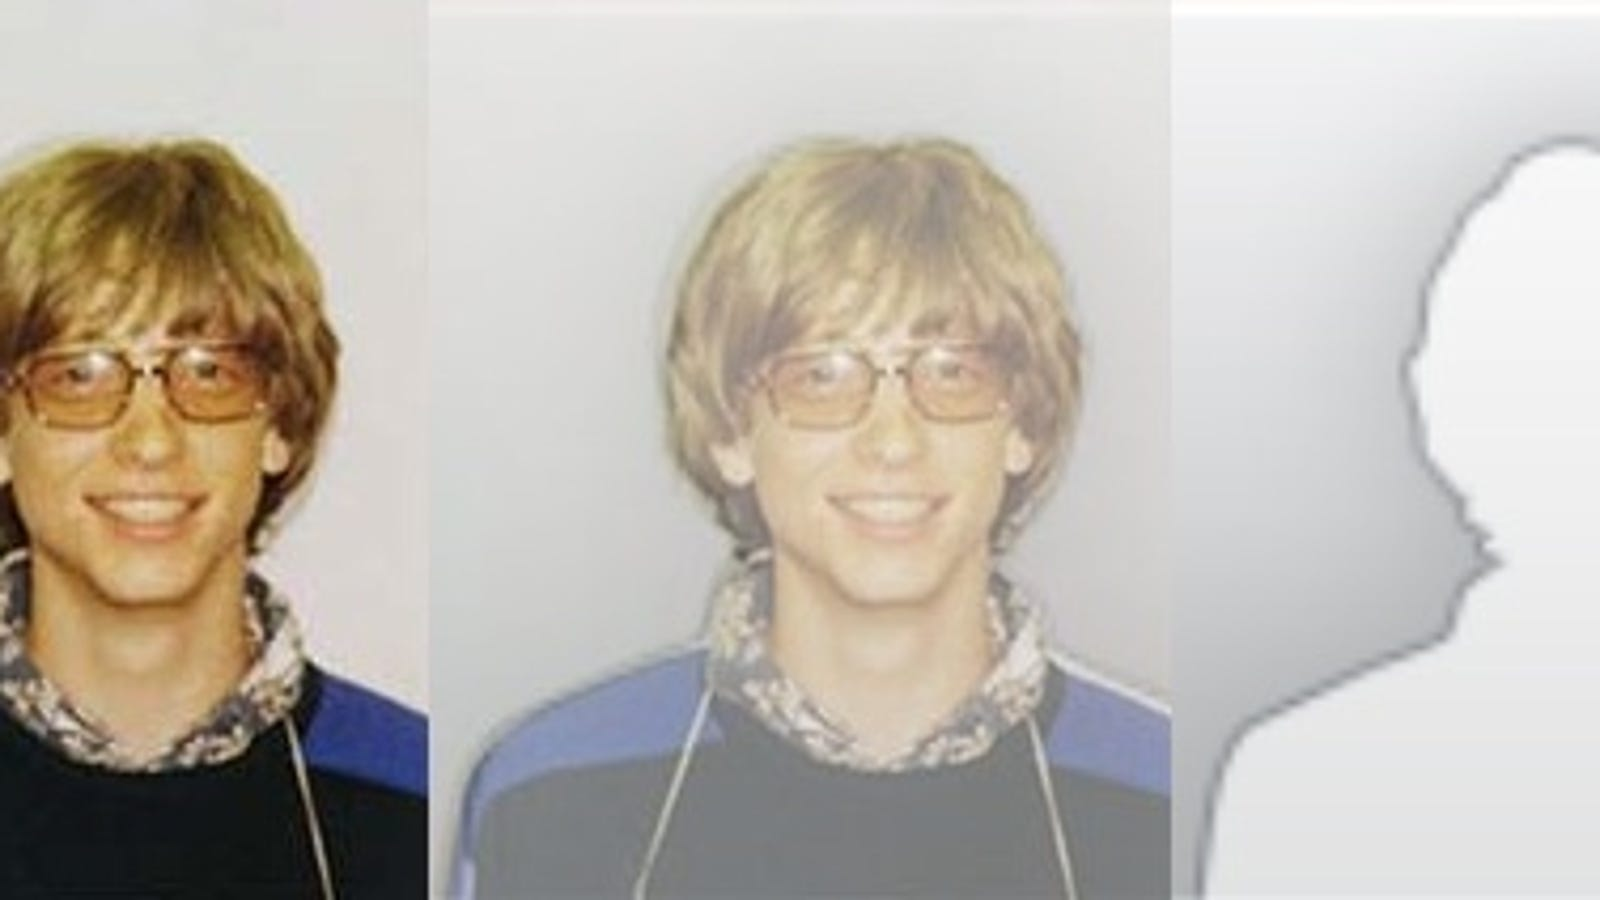 Is Bill Gates' Mug Shot The Generic User Icon In Outlook 2010?